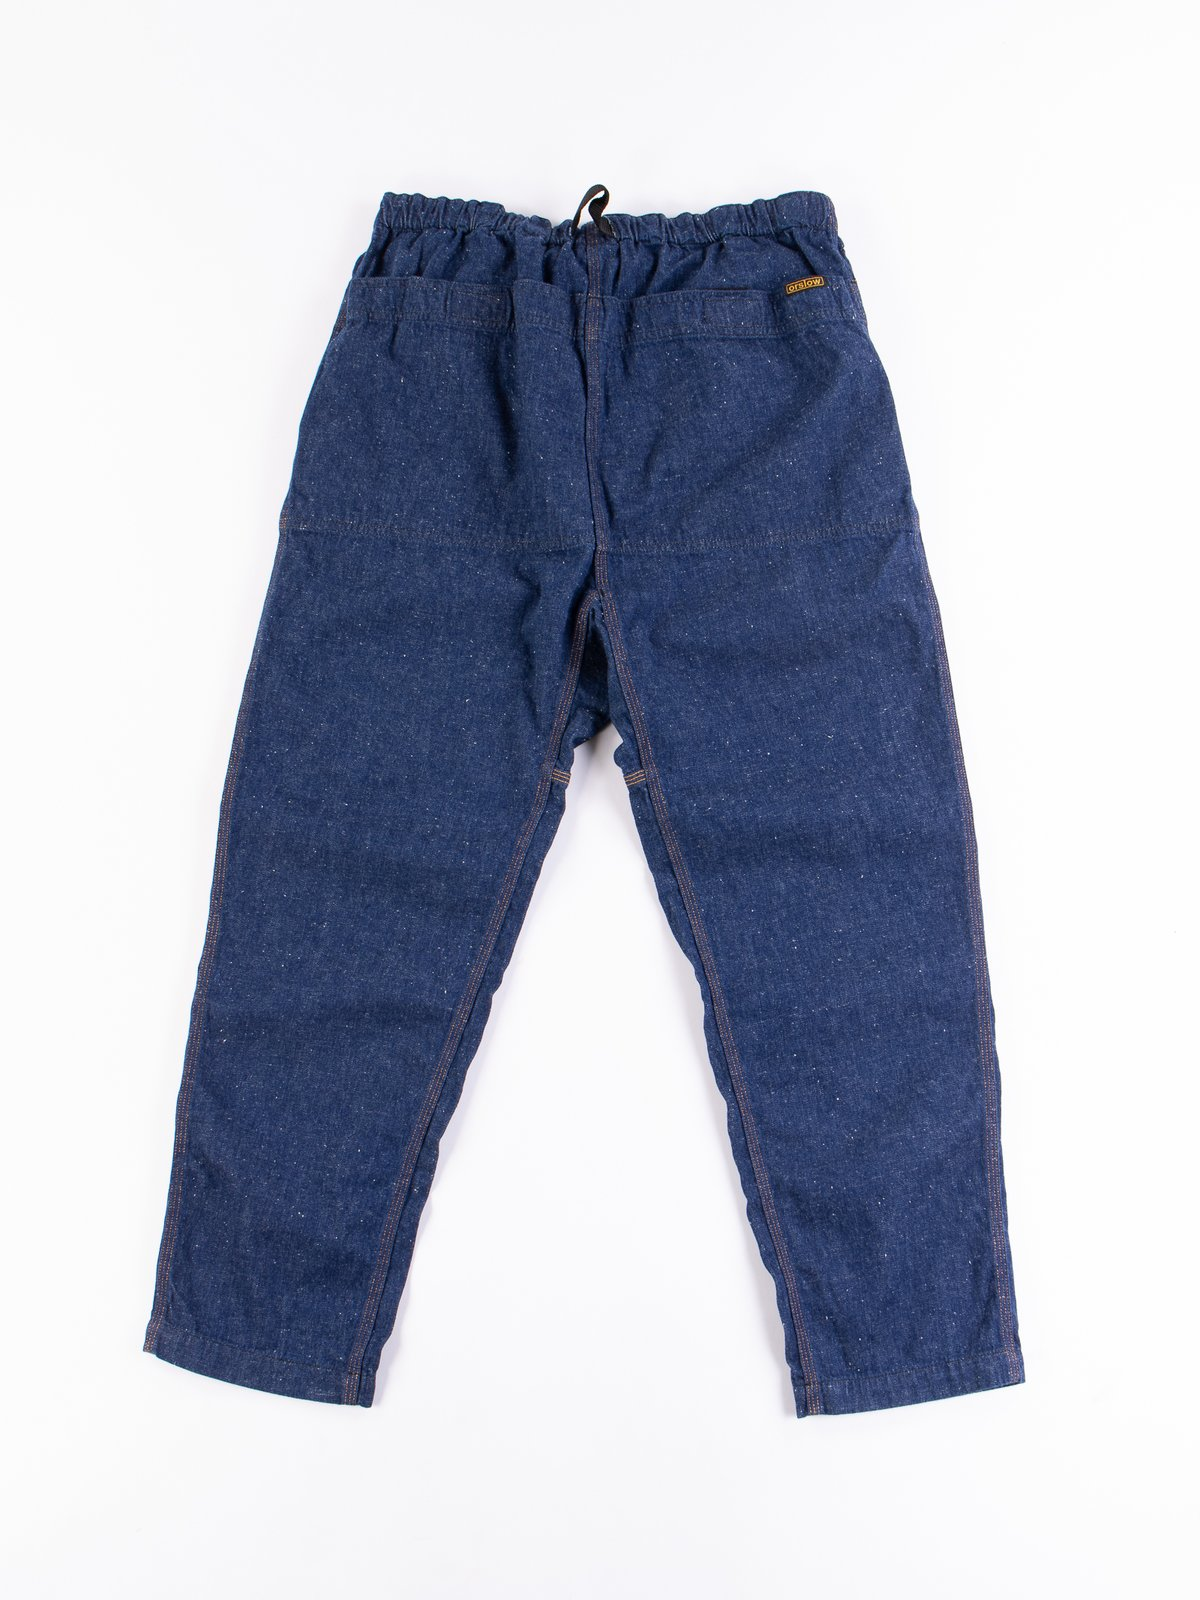 One Wash Denim TBB Climbing Pant - Image 7